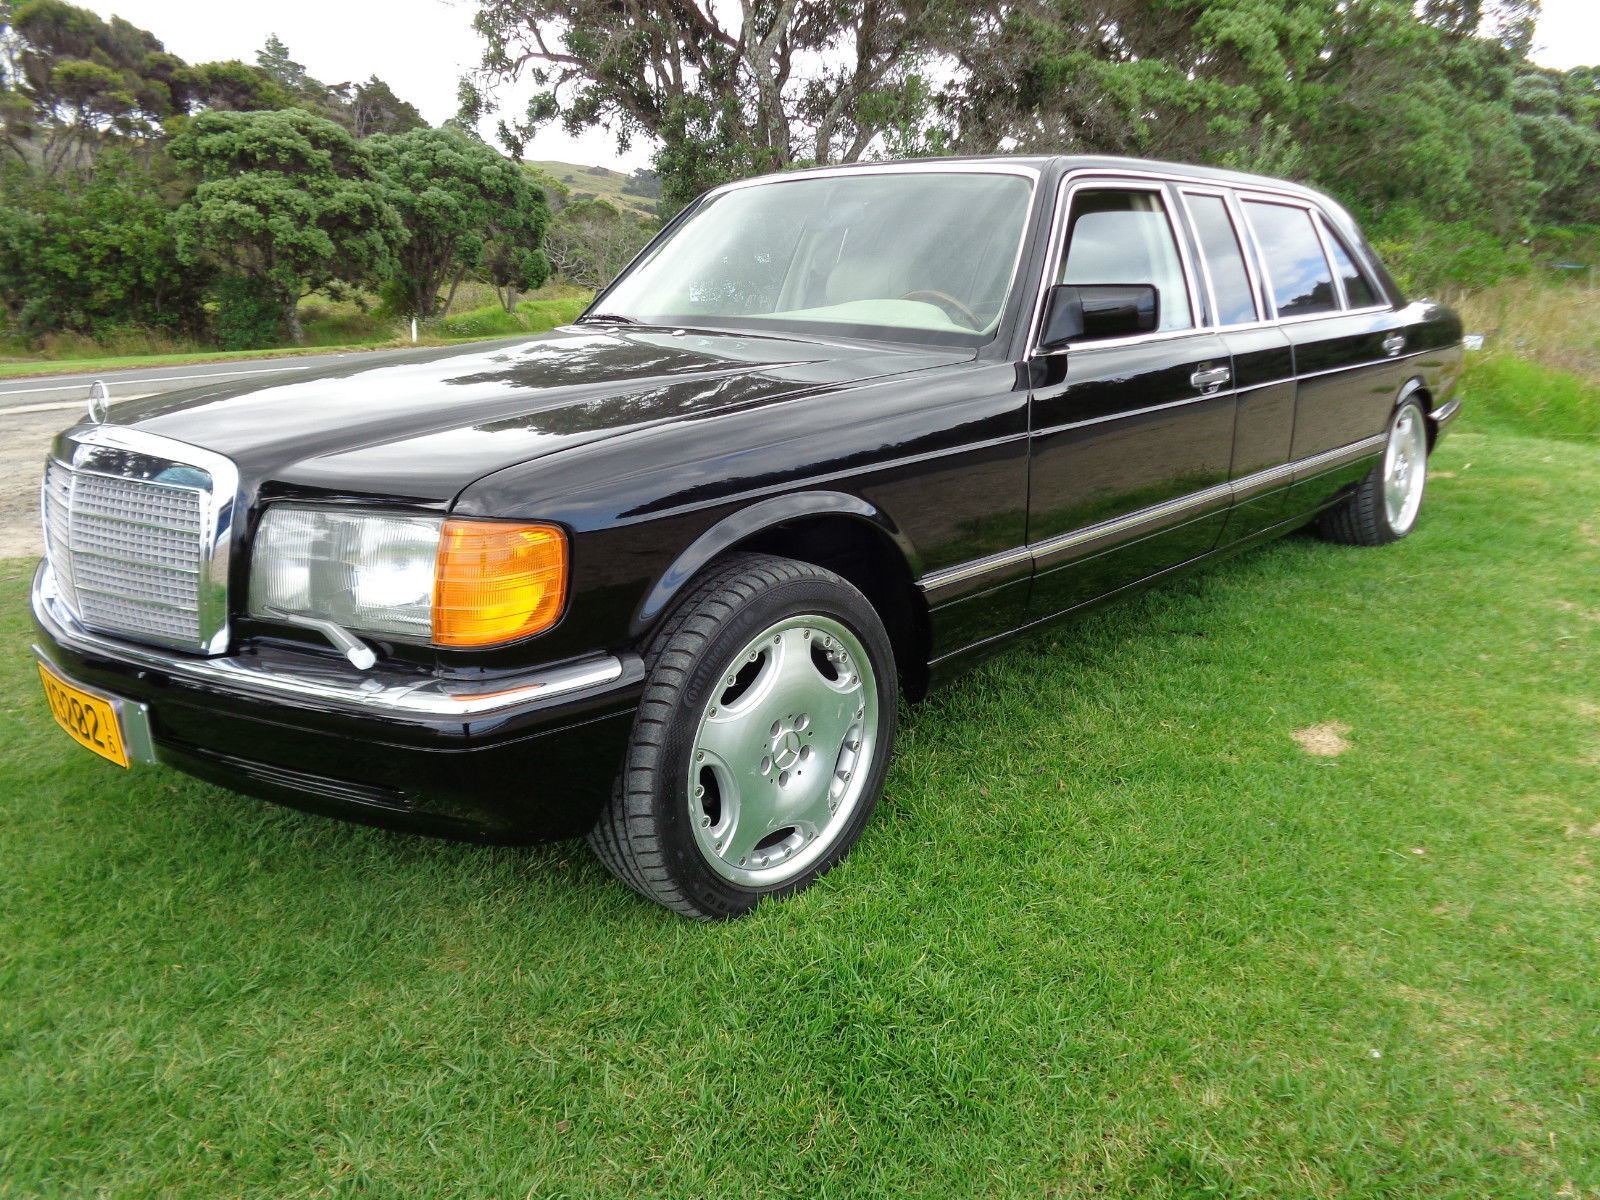 1989 mercedes benz 560 sel carat by duchatelet limousine w126 for sale. Black Bedroom Furniture Sets. Home Design Ideas